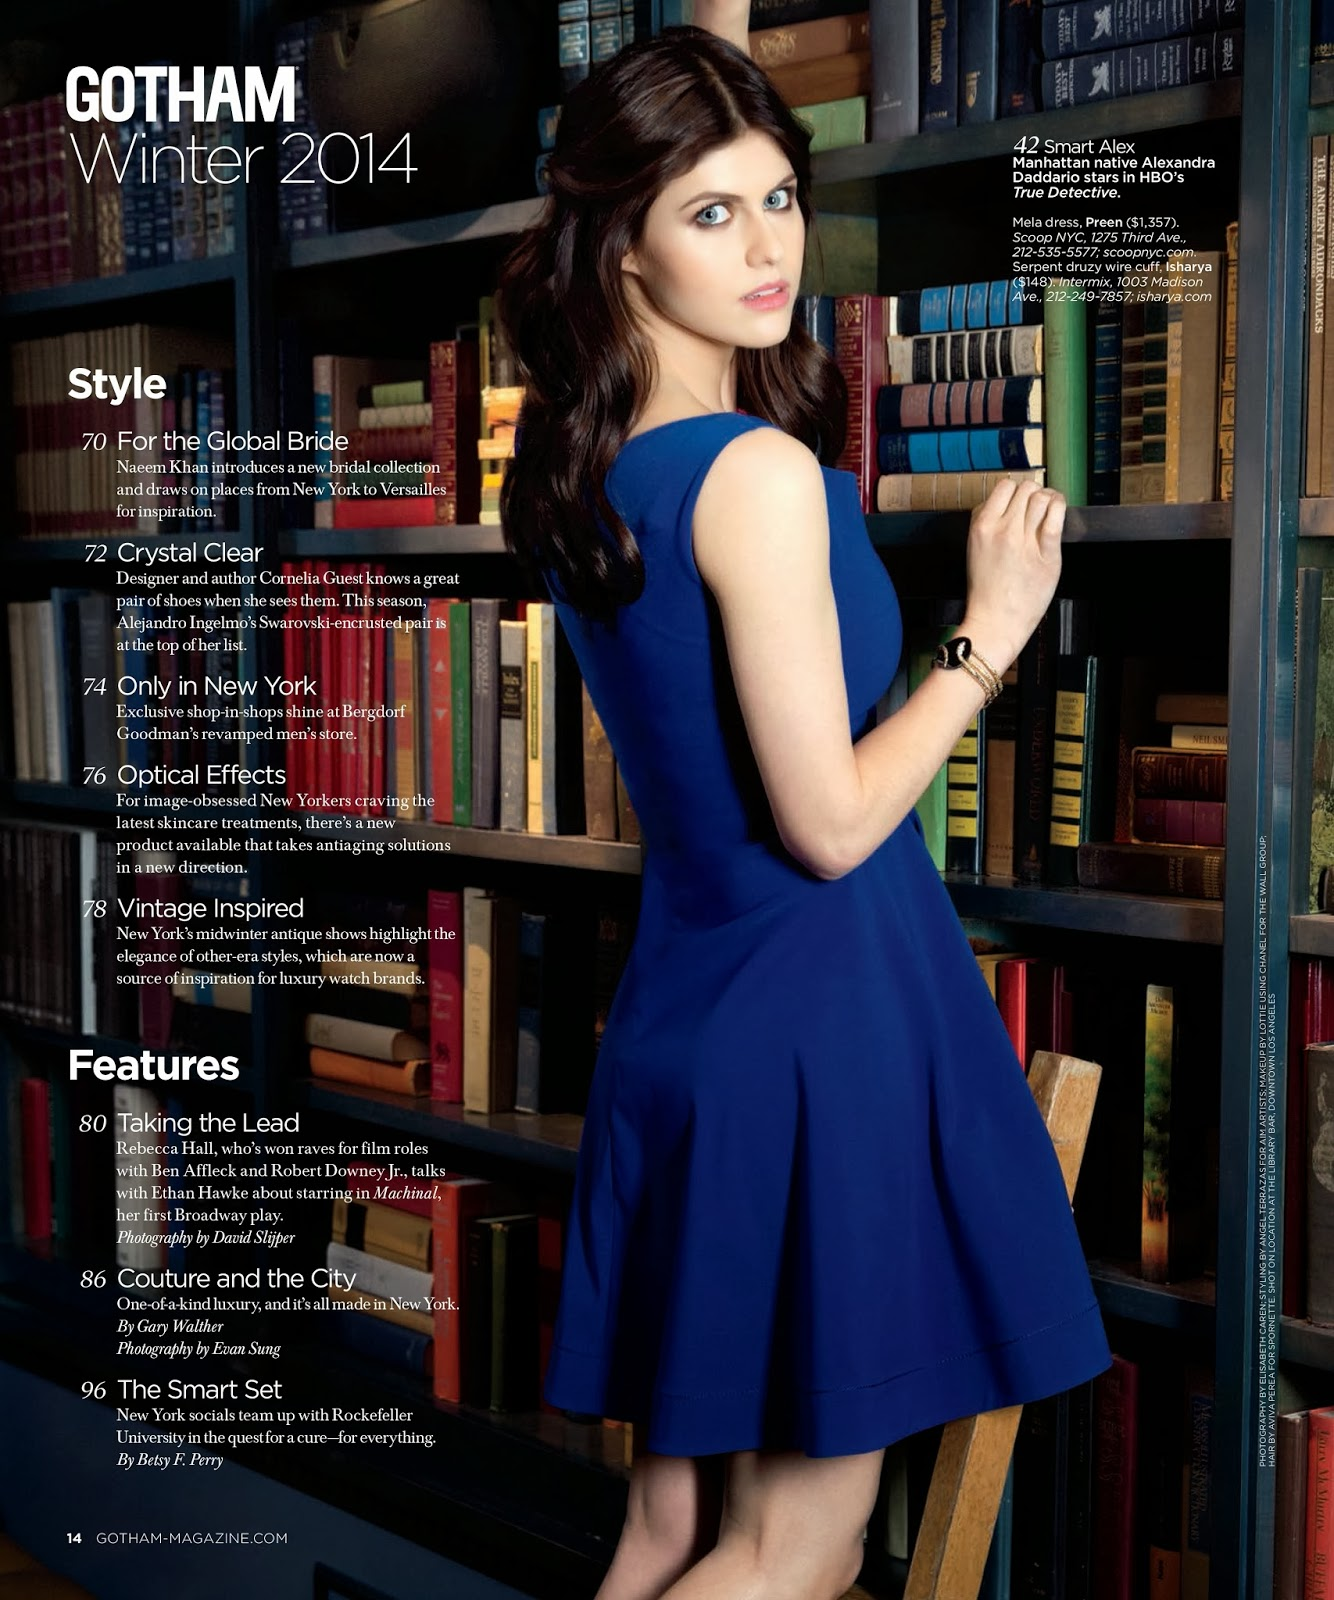 Magazine Photoshoot : Alexandra Daddario Photoshot For Gotham Magazine Winter 2014 Issue